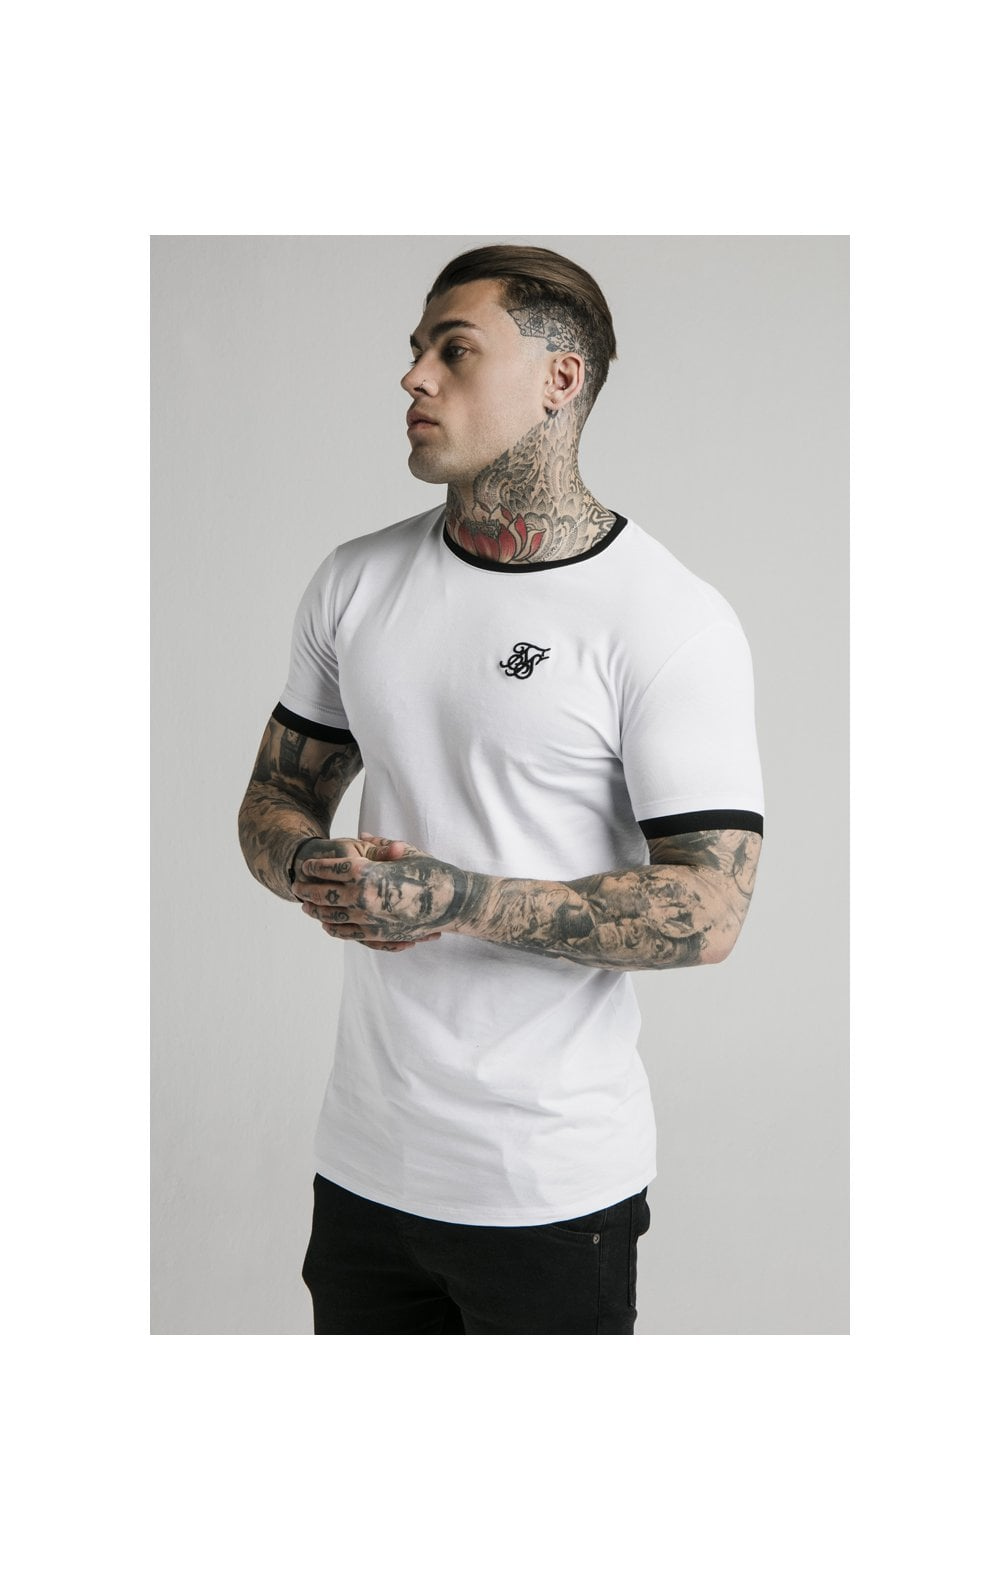 SikSilk S/S Inset Straight Hem Ringer Gym Tee – White